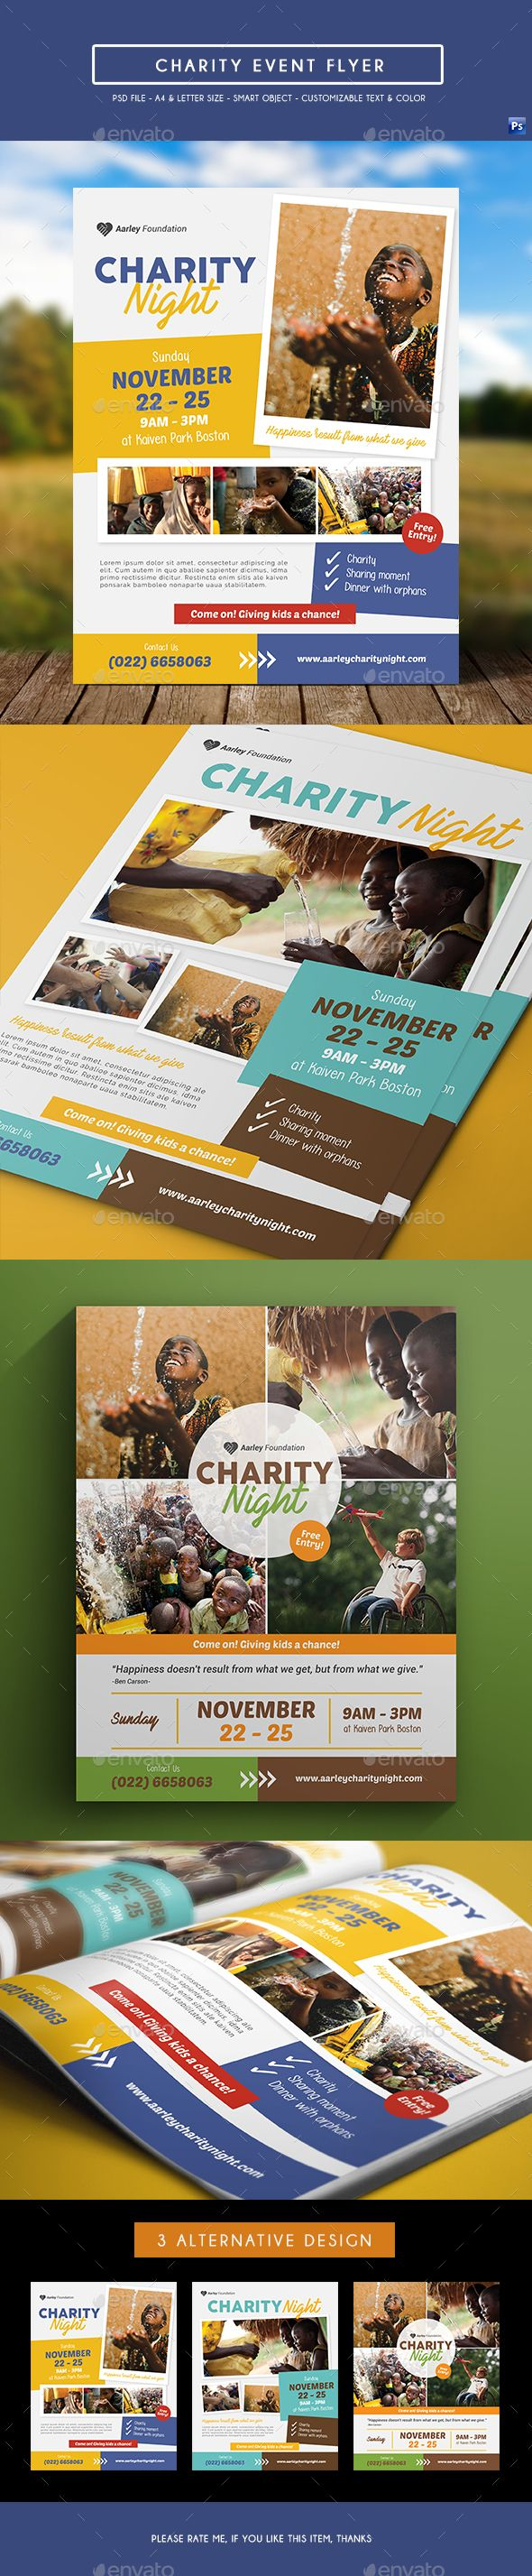 Charity Event Flyer — Photoshop PSD #donation #charity night • Download ➝ https://graphicriver.net/item/charity-event-flyer/19076696?ref=pxcr